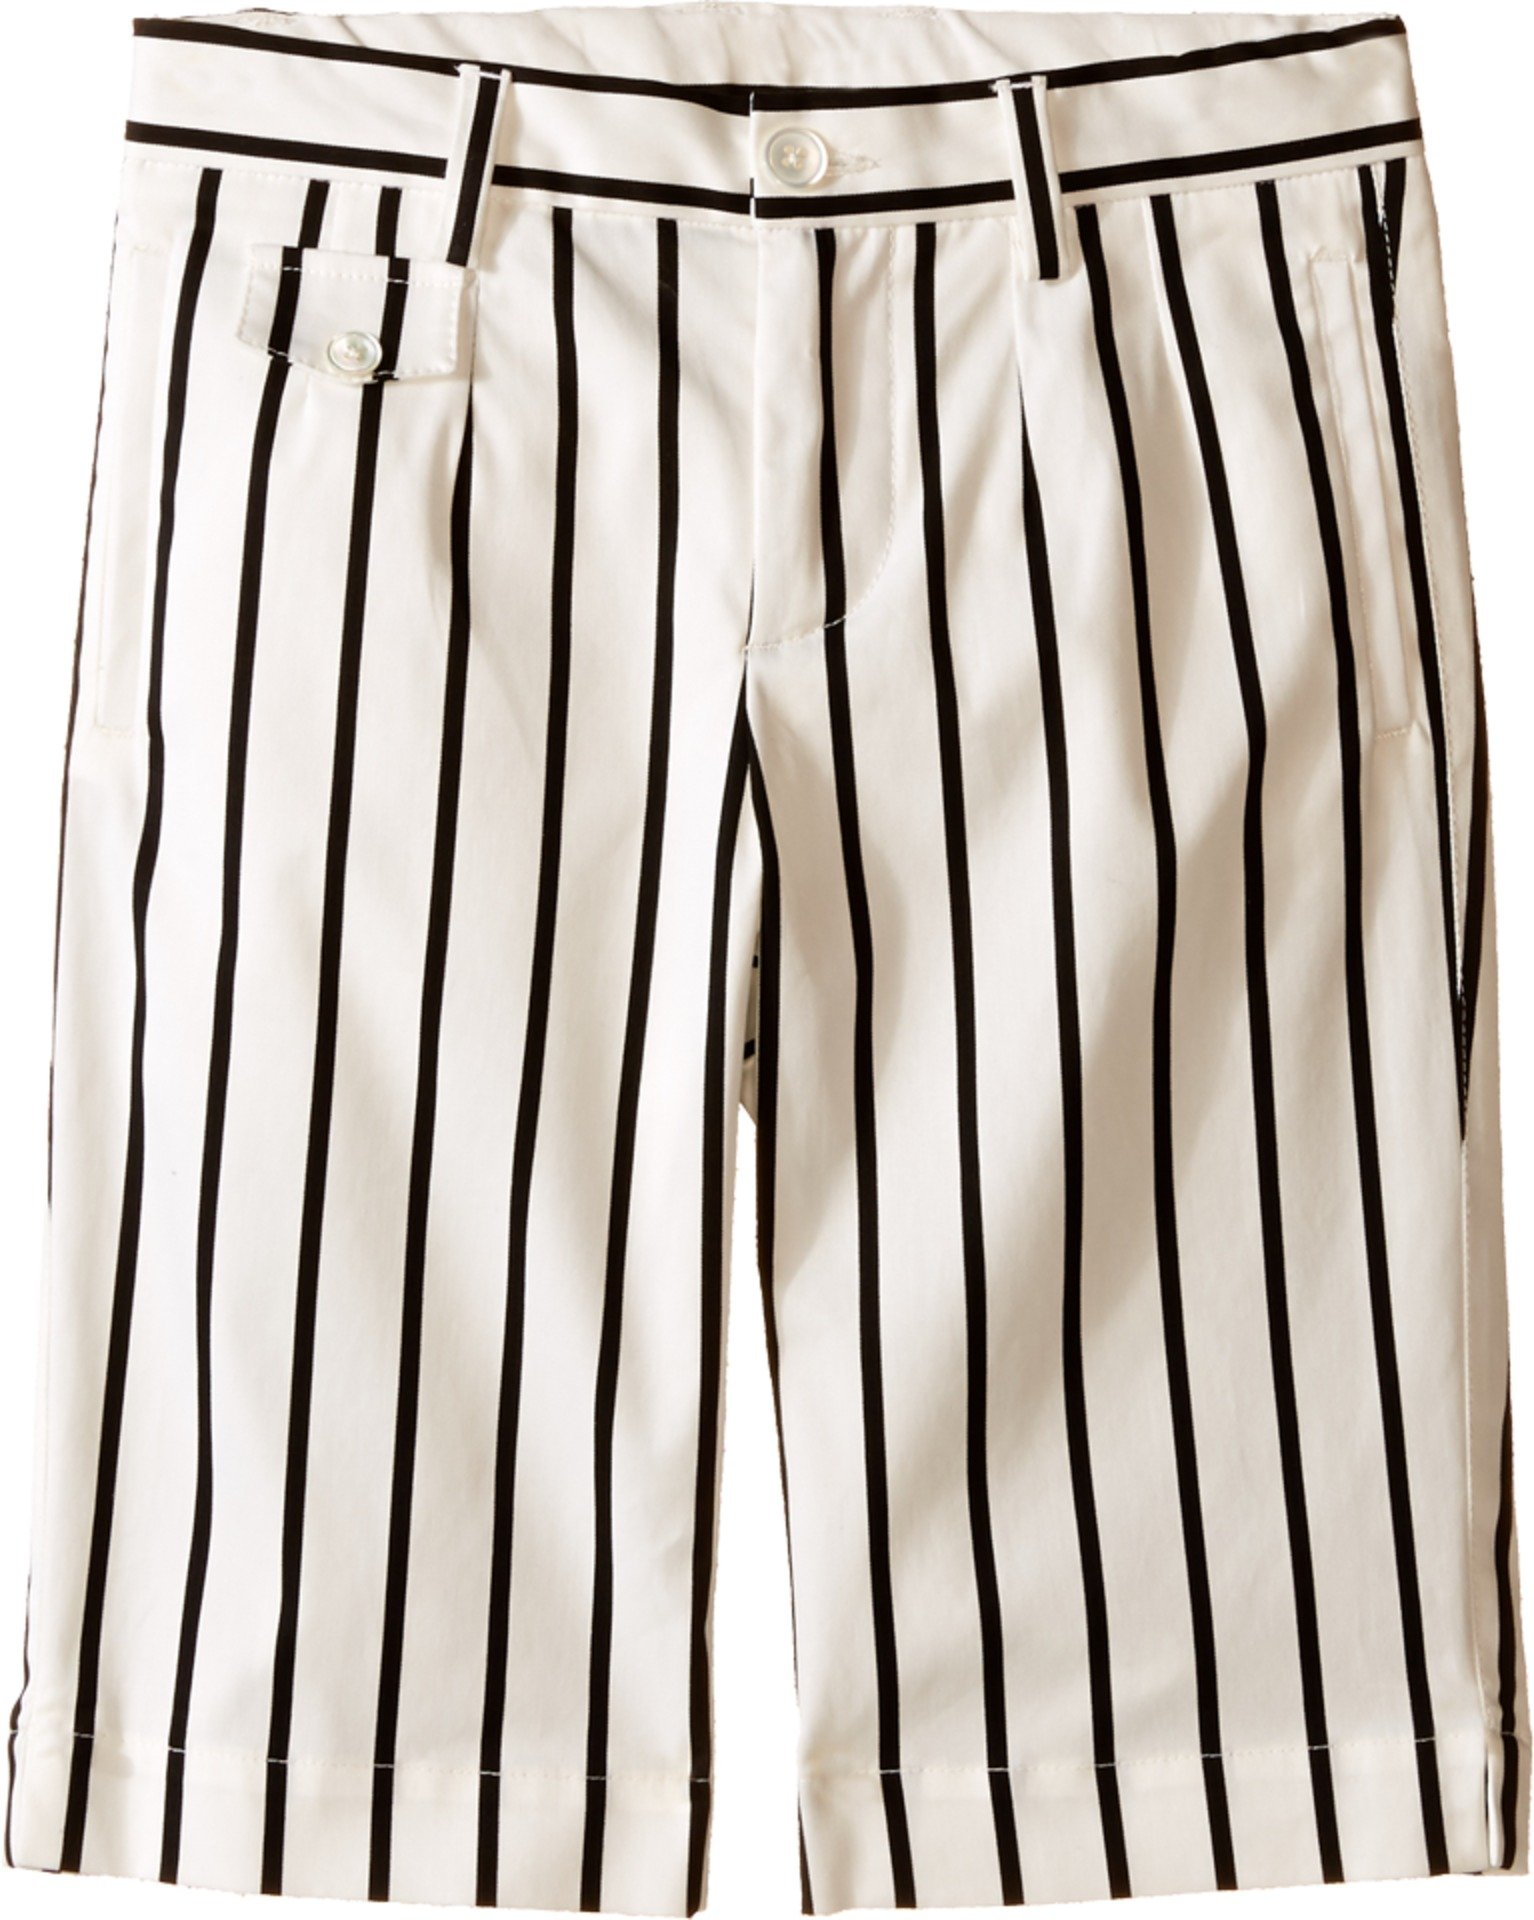 Dolce & Gabbana Kids Baby Boy's Striped Shorts (Toddler/Little Kids) Black/White Stripe Print Shorts by Dolce & Gabbana